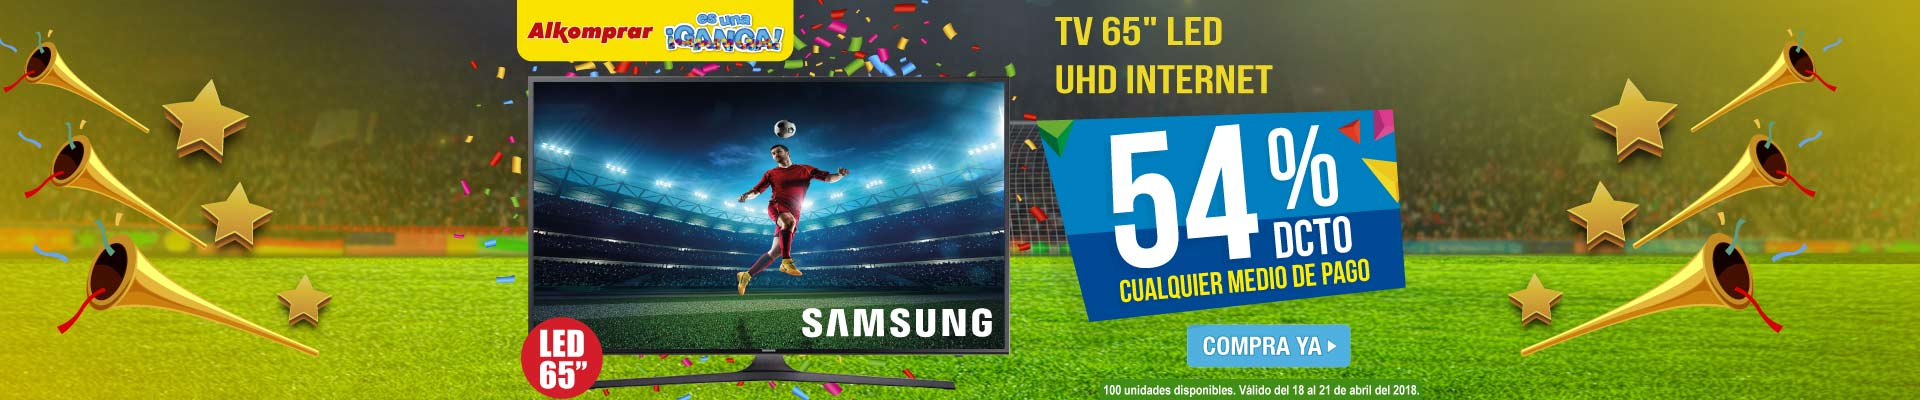 PPAL ALKP-1-TV-TV 65 165cm SAMSUNG LED 65MU6100 UHD Internet-prod-Abril18-20